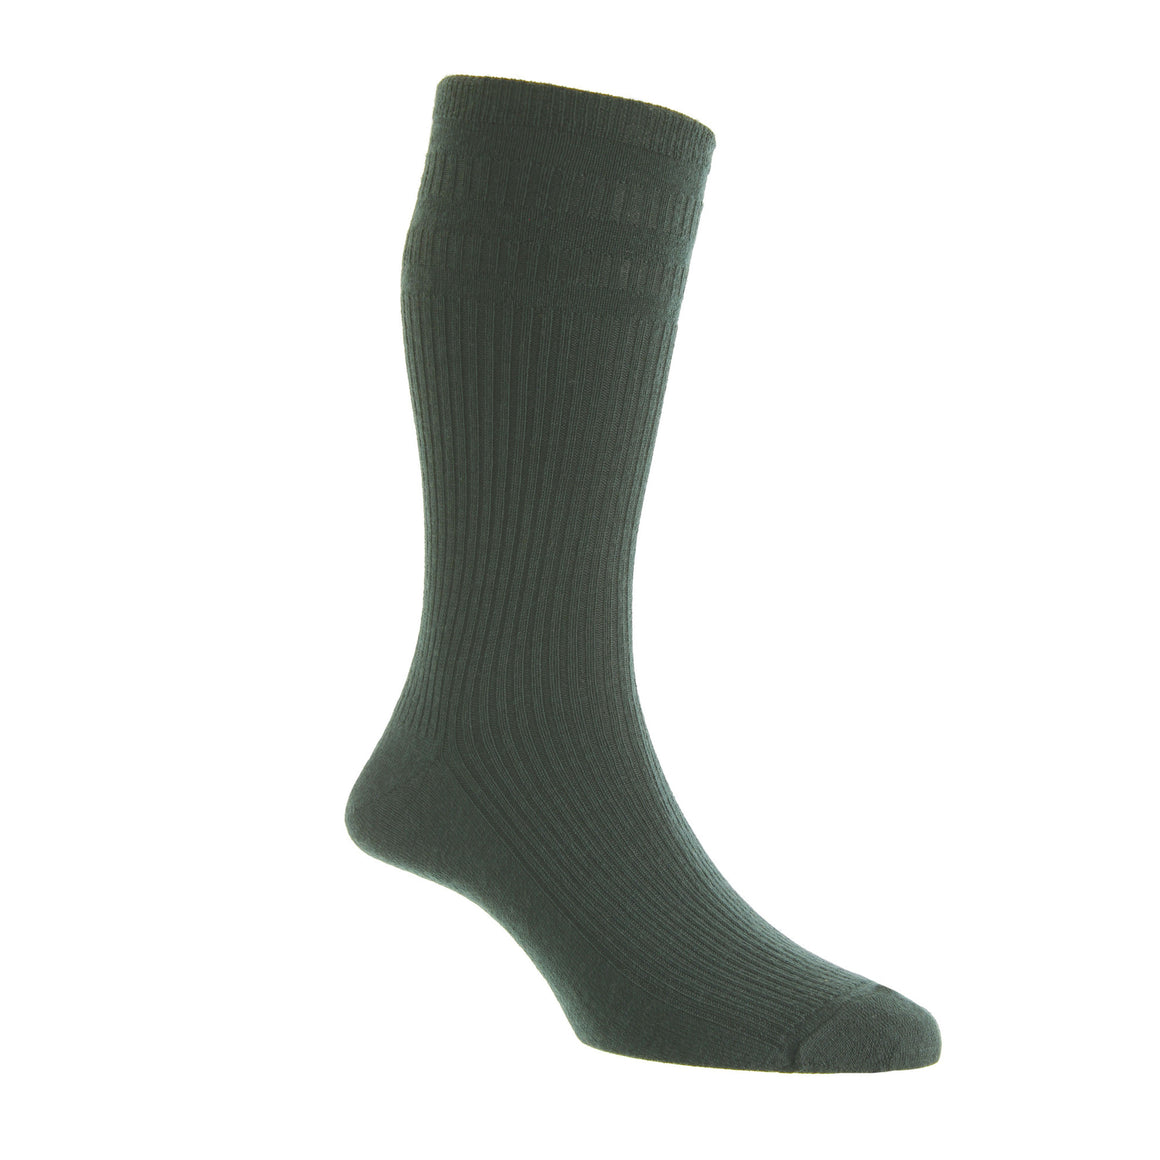 HJ90 Socks for Men in Bottle